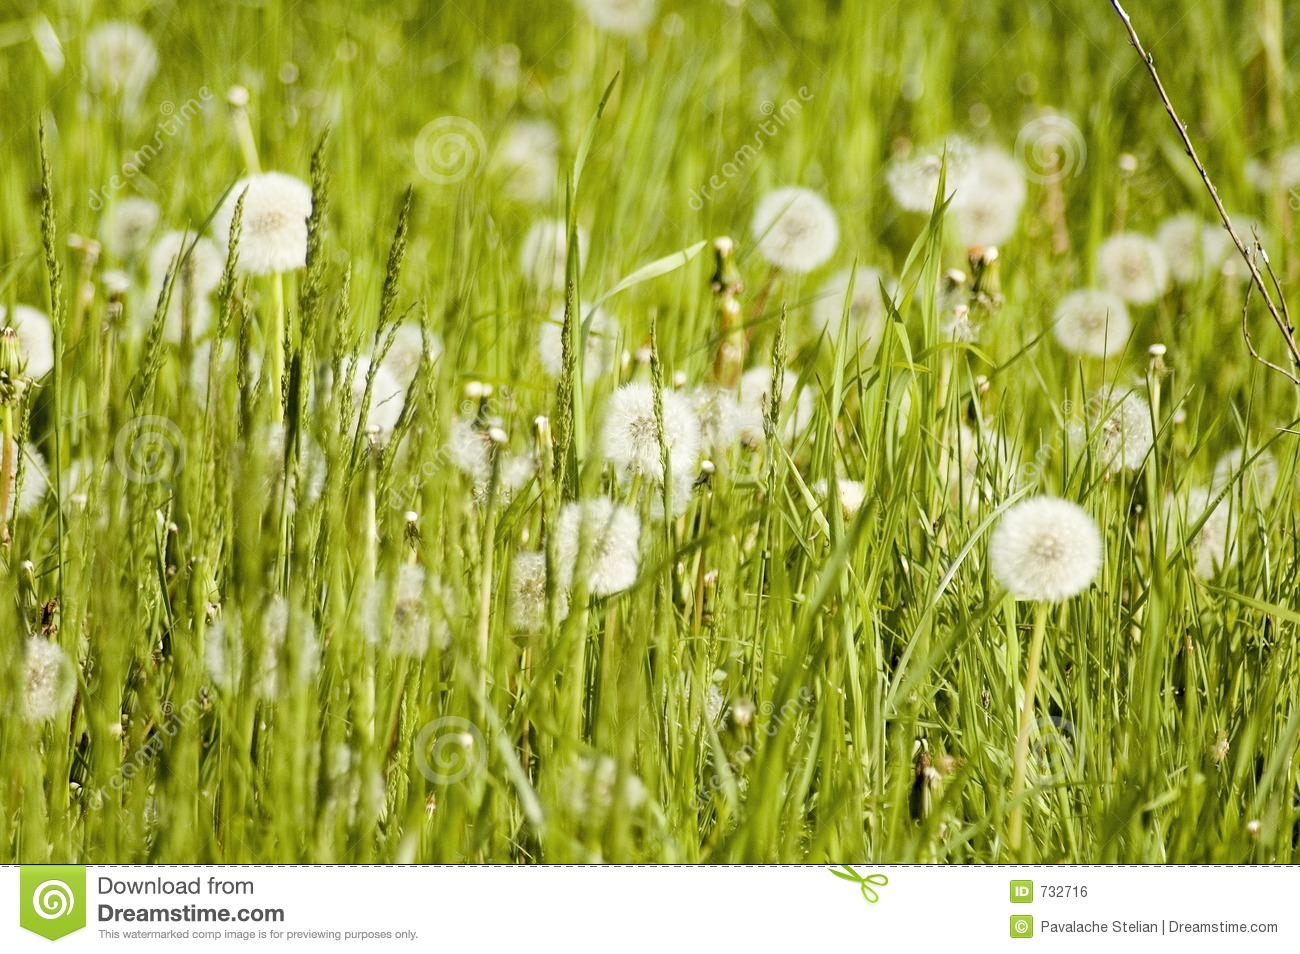 1000  images about Meadows on Pinterest | Gardens, Perennials and ...